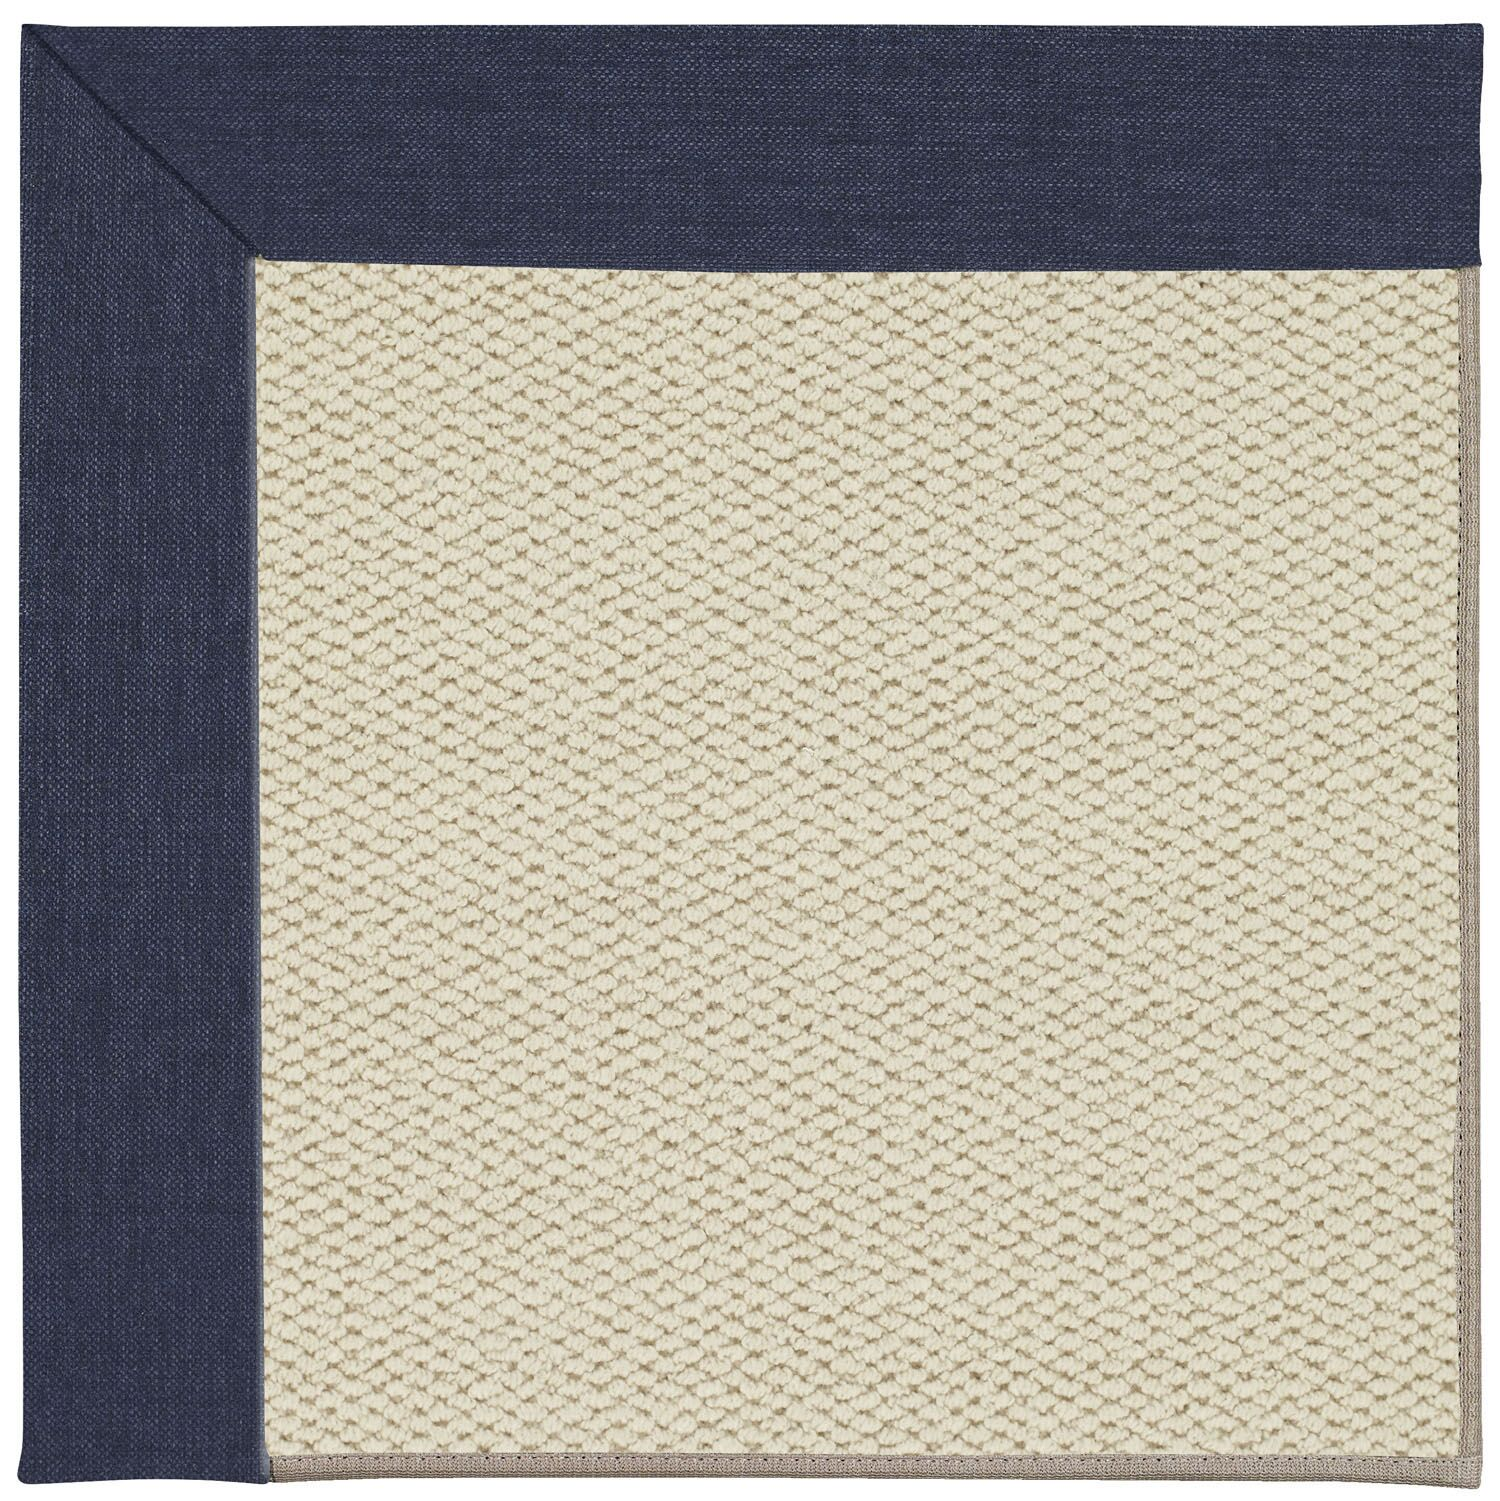 Barrett Linen Machine Tufted Navy/Brown Area Rug Rug Size: Square 10'